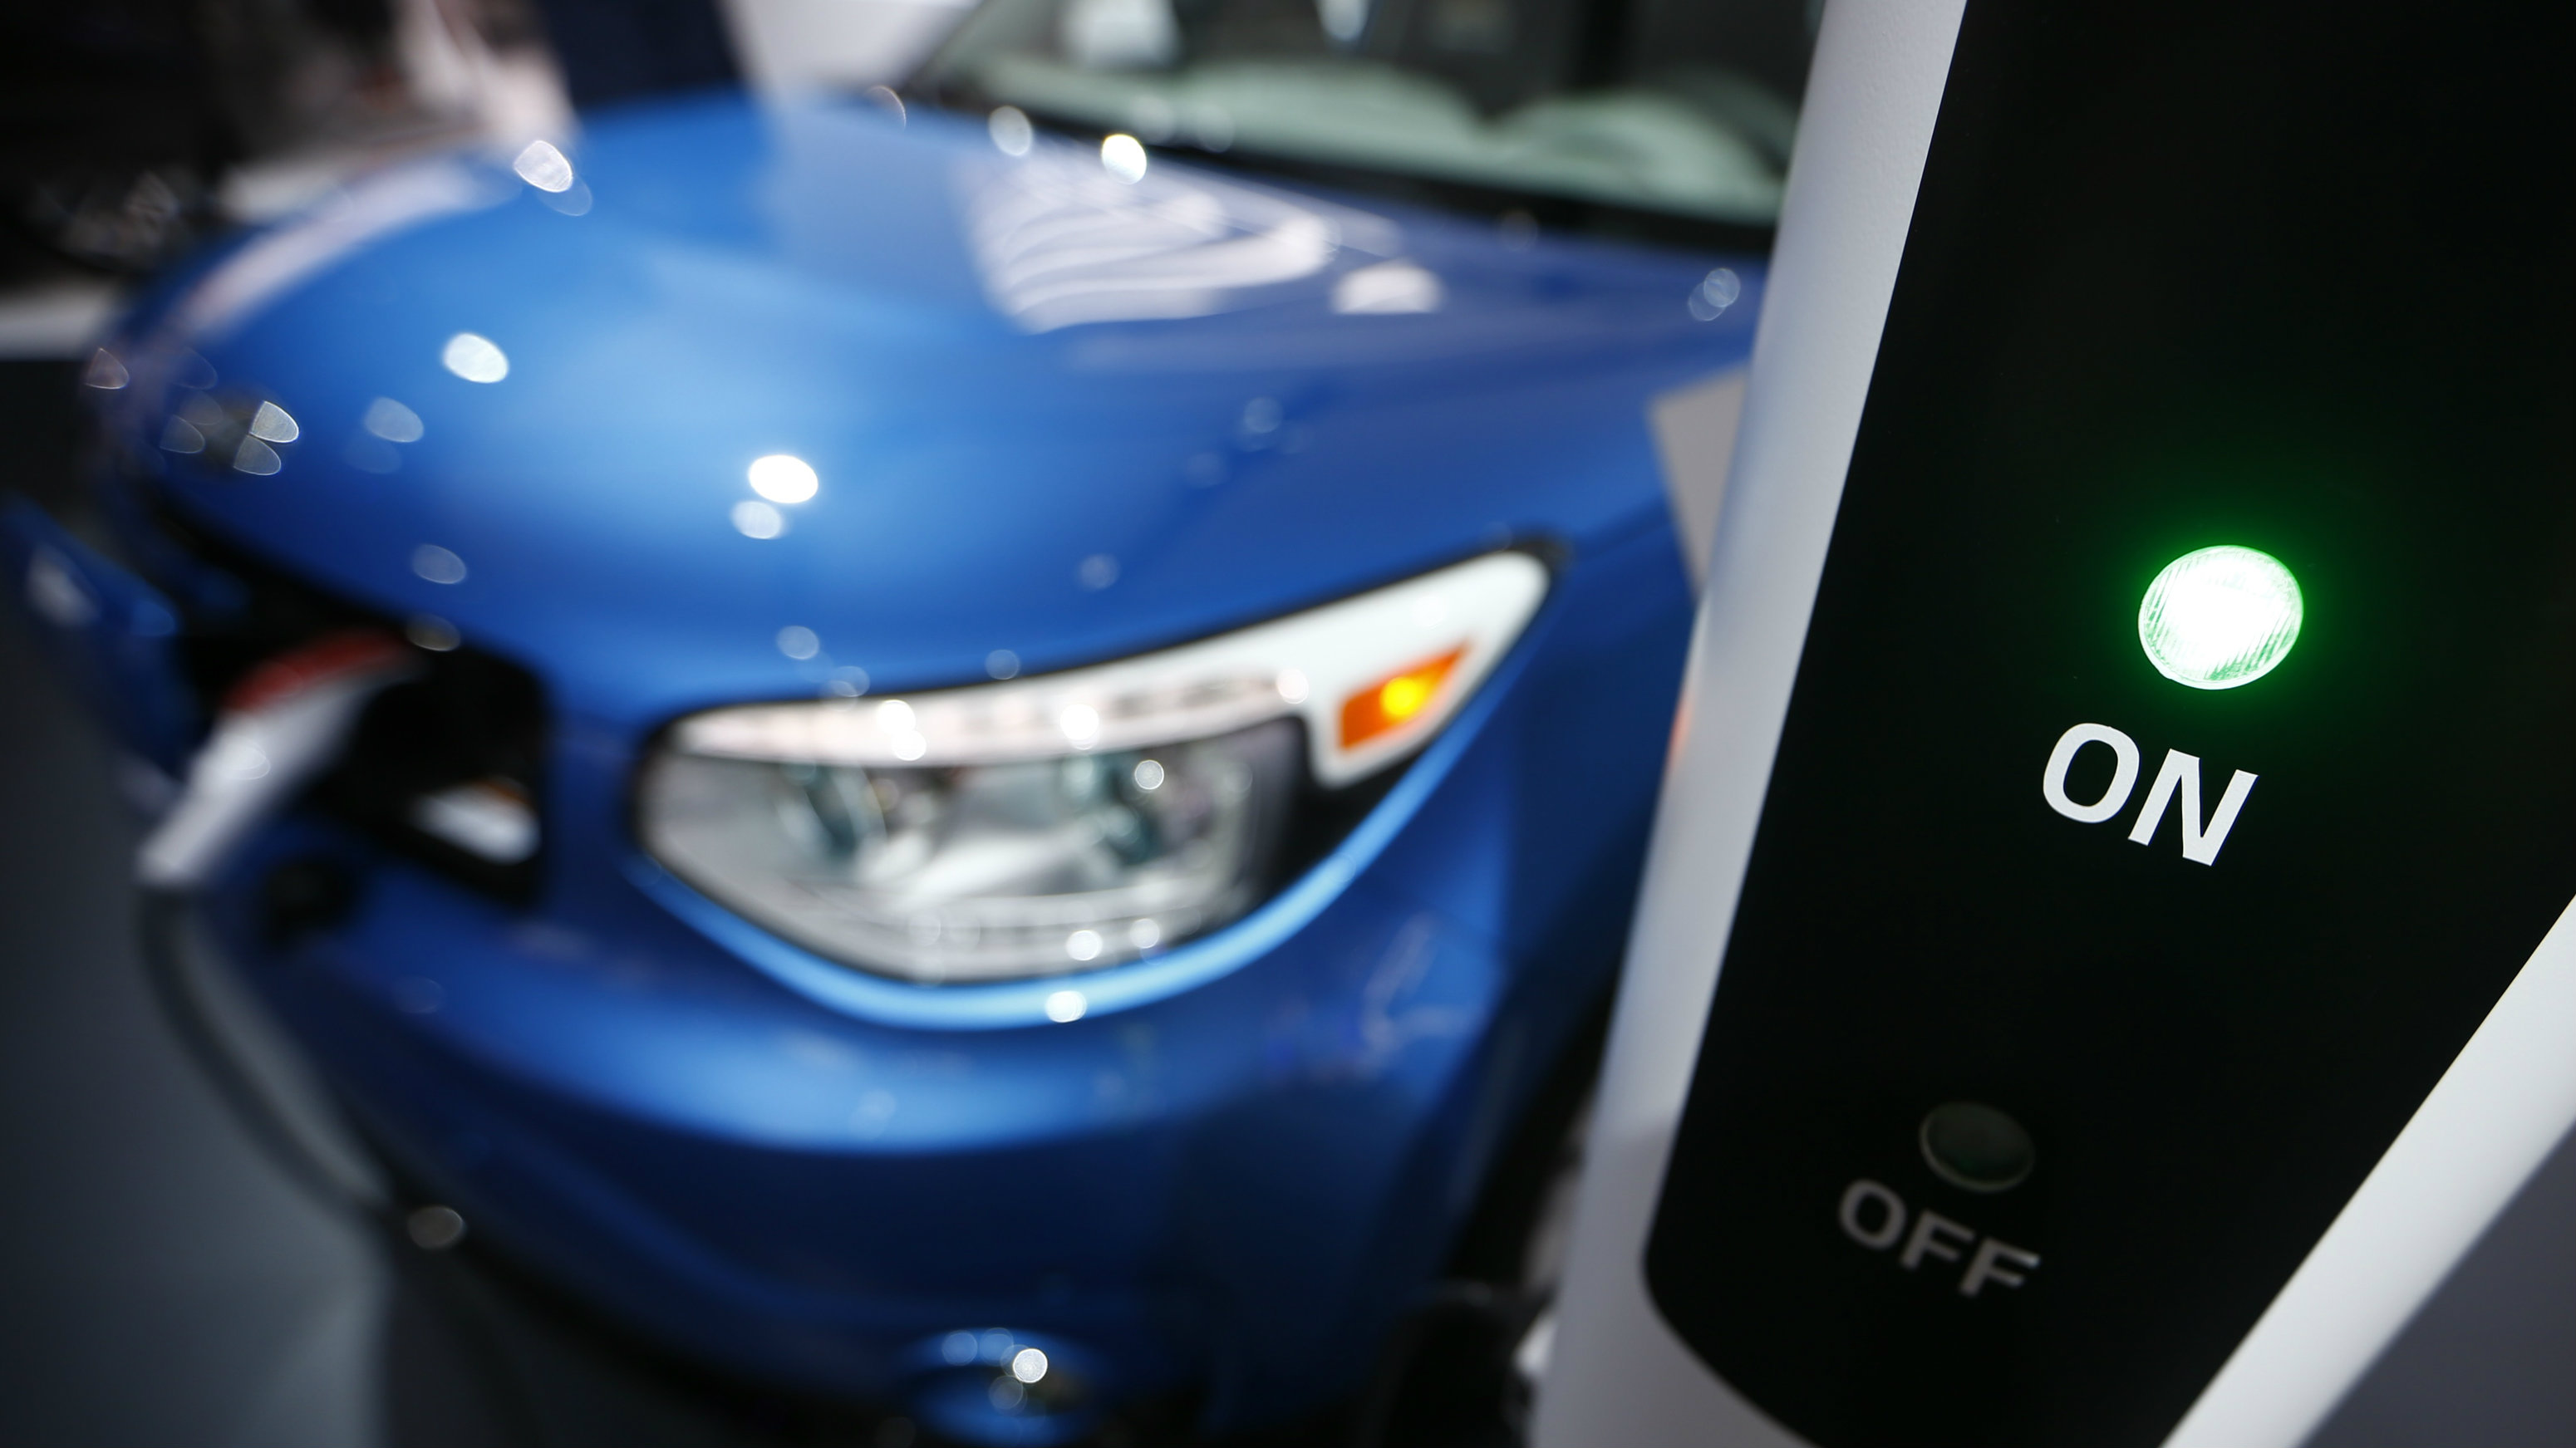 A Kia Soul EV is plugged into a charging station during the second press day of the North American International Auto Show in Detroit, Michigan, January 13, 2015. REUTERS/Mark Blinch (UNITED STATES - Tags: TRANSPORT BUSINESS)